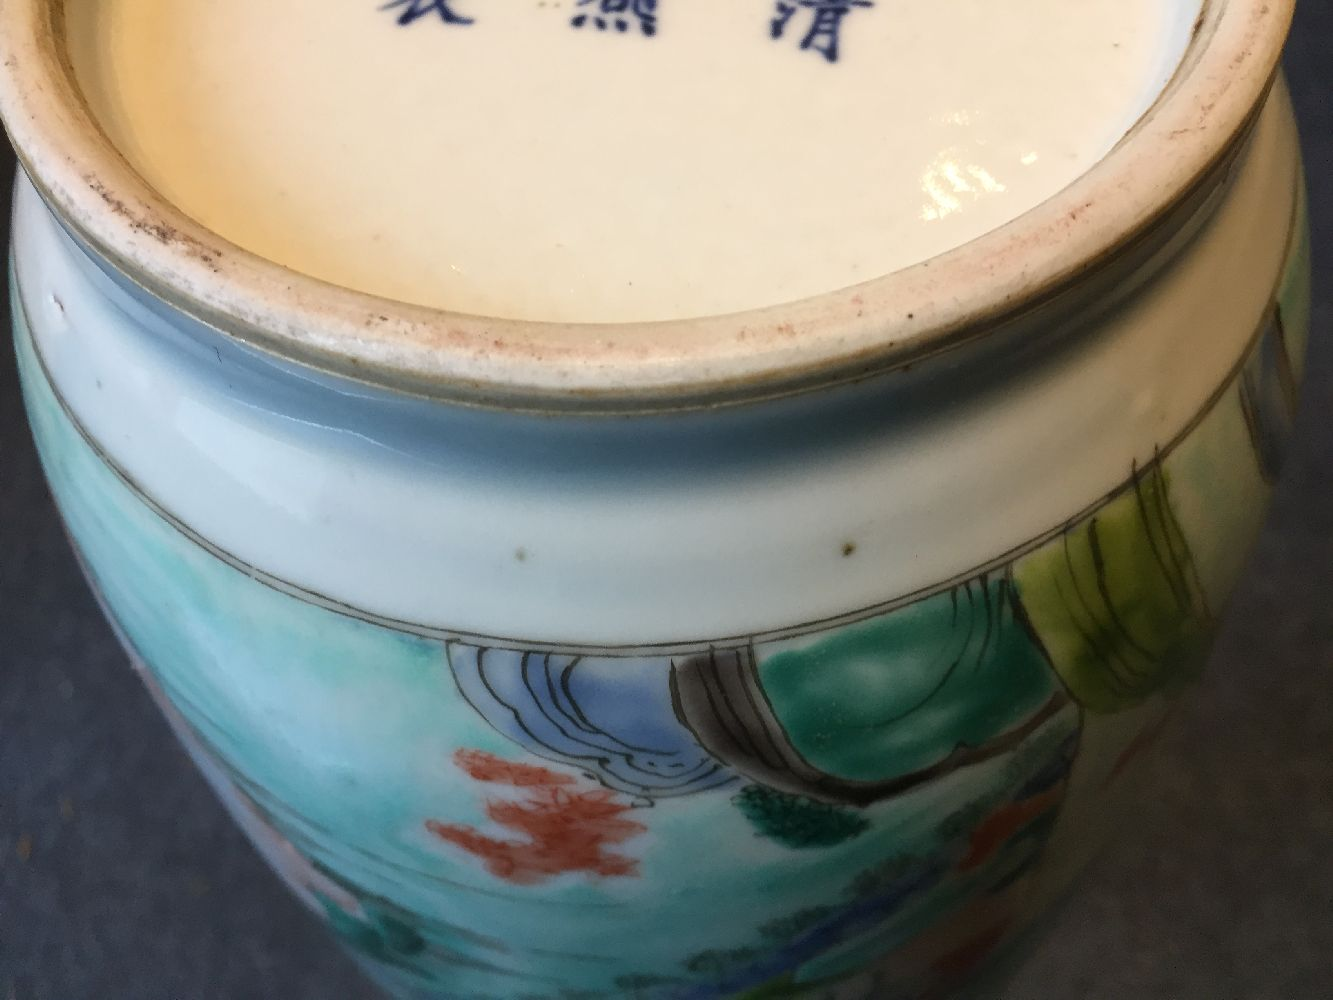 A Chinese porcelain 'silk production' rouleau vase, late Qing dynasty/ Republic period, painted in - Image 18 of 28